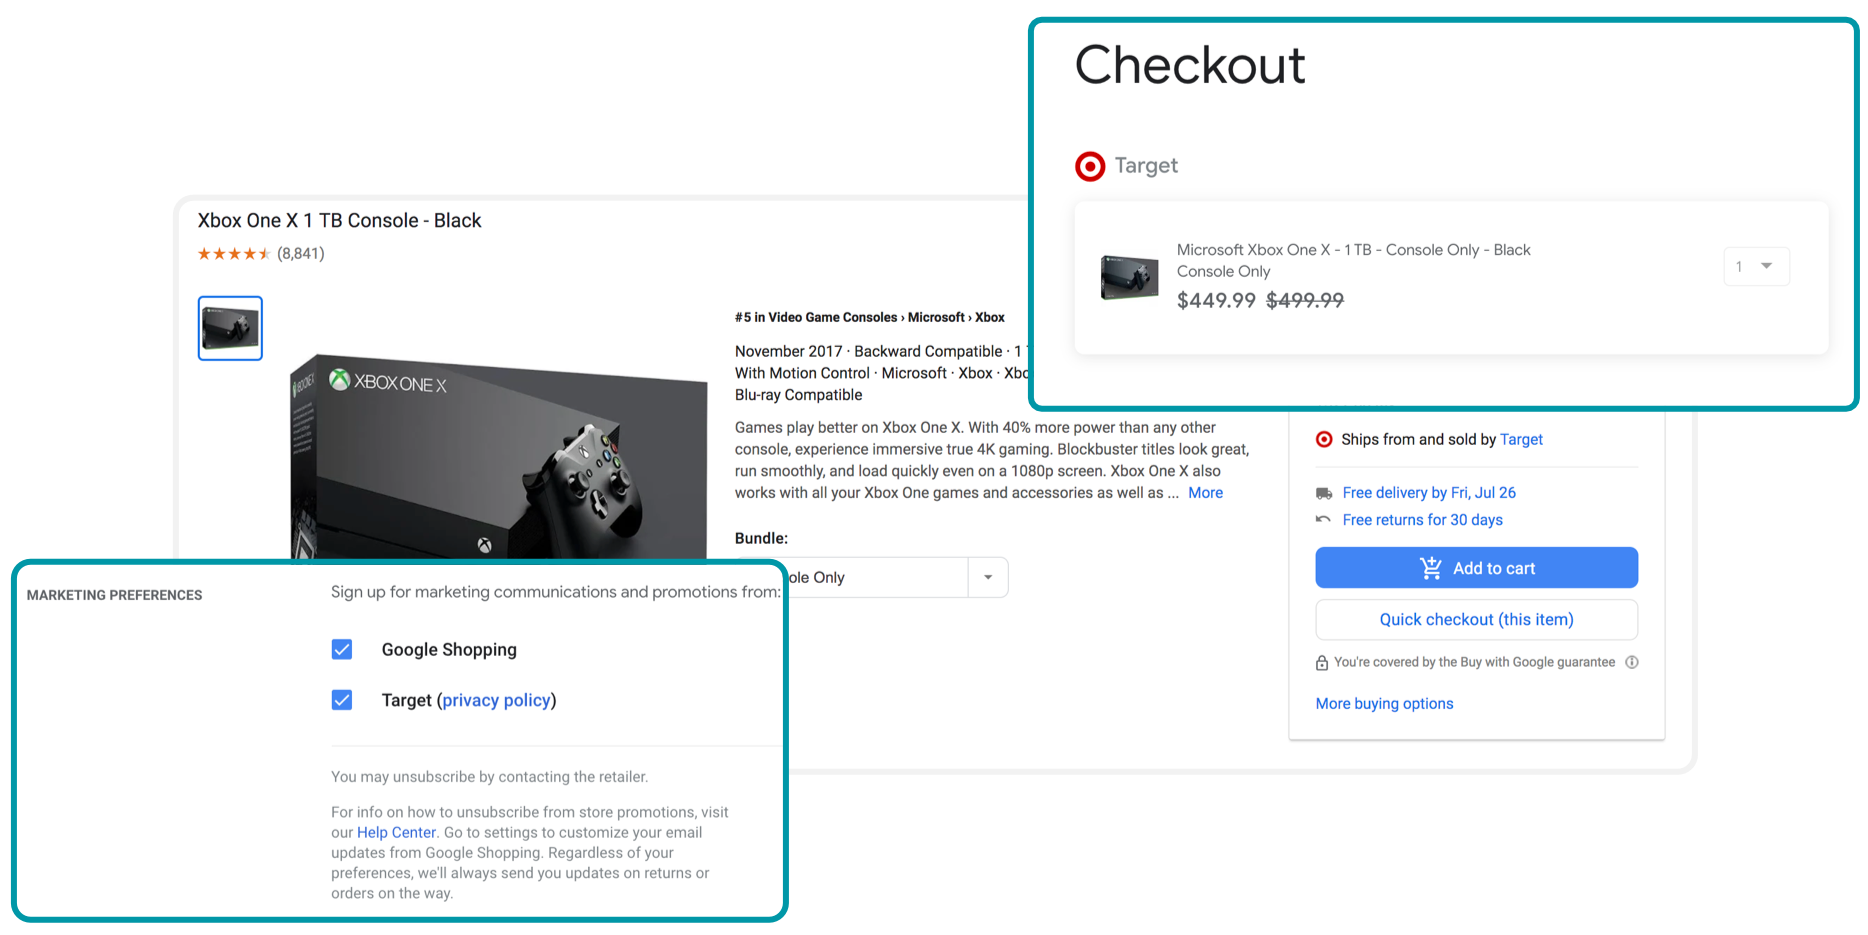 google shopping checkout pages where brands are promoted